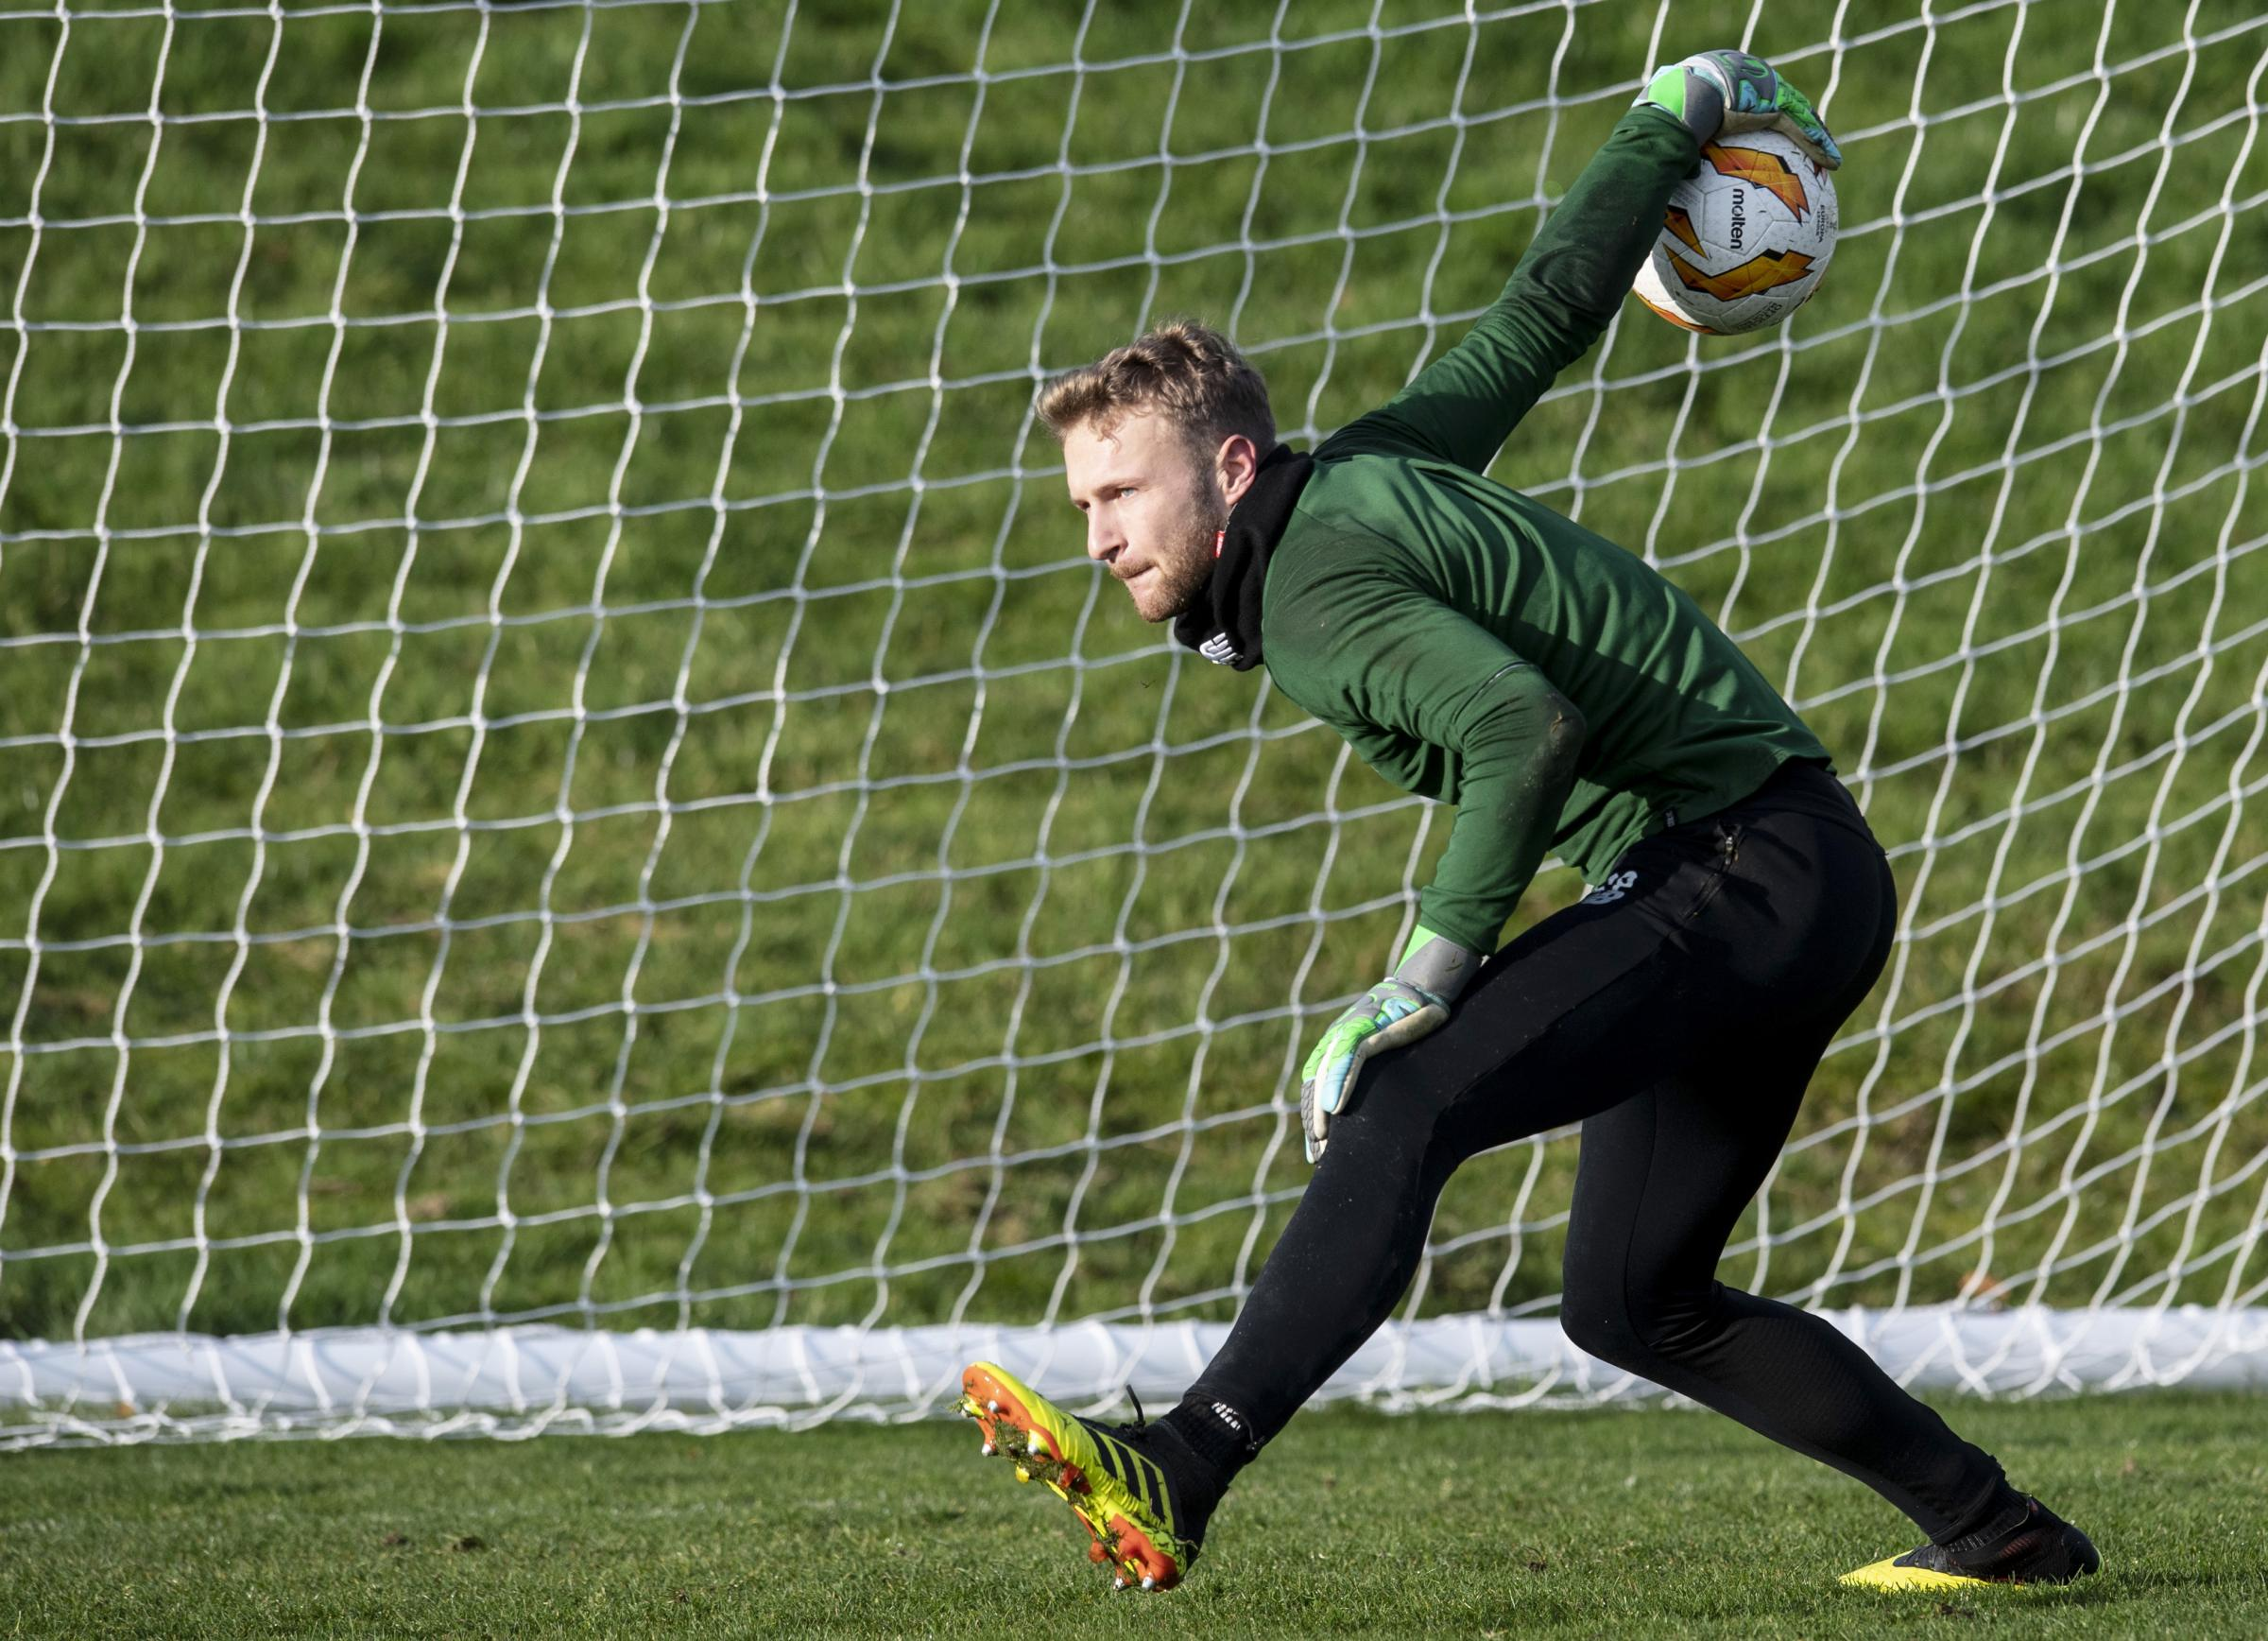 Scott Bain is expected to take the gloves for Scotland this week